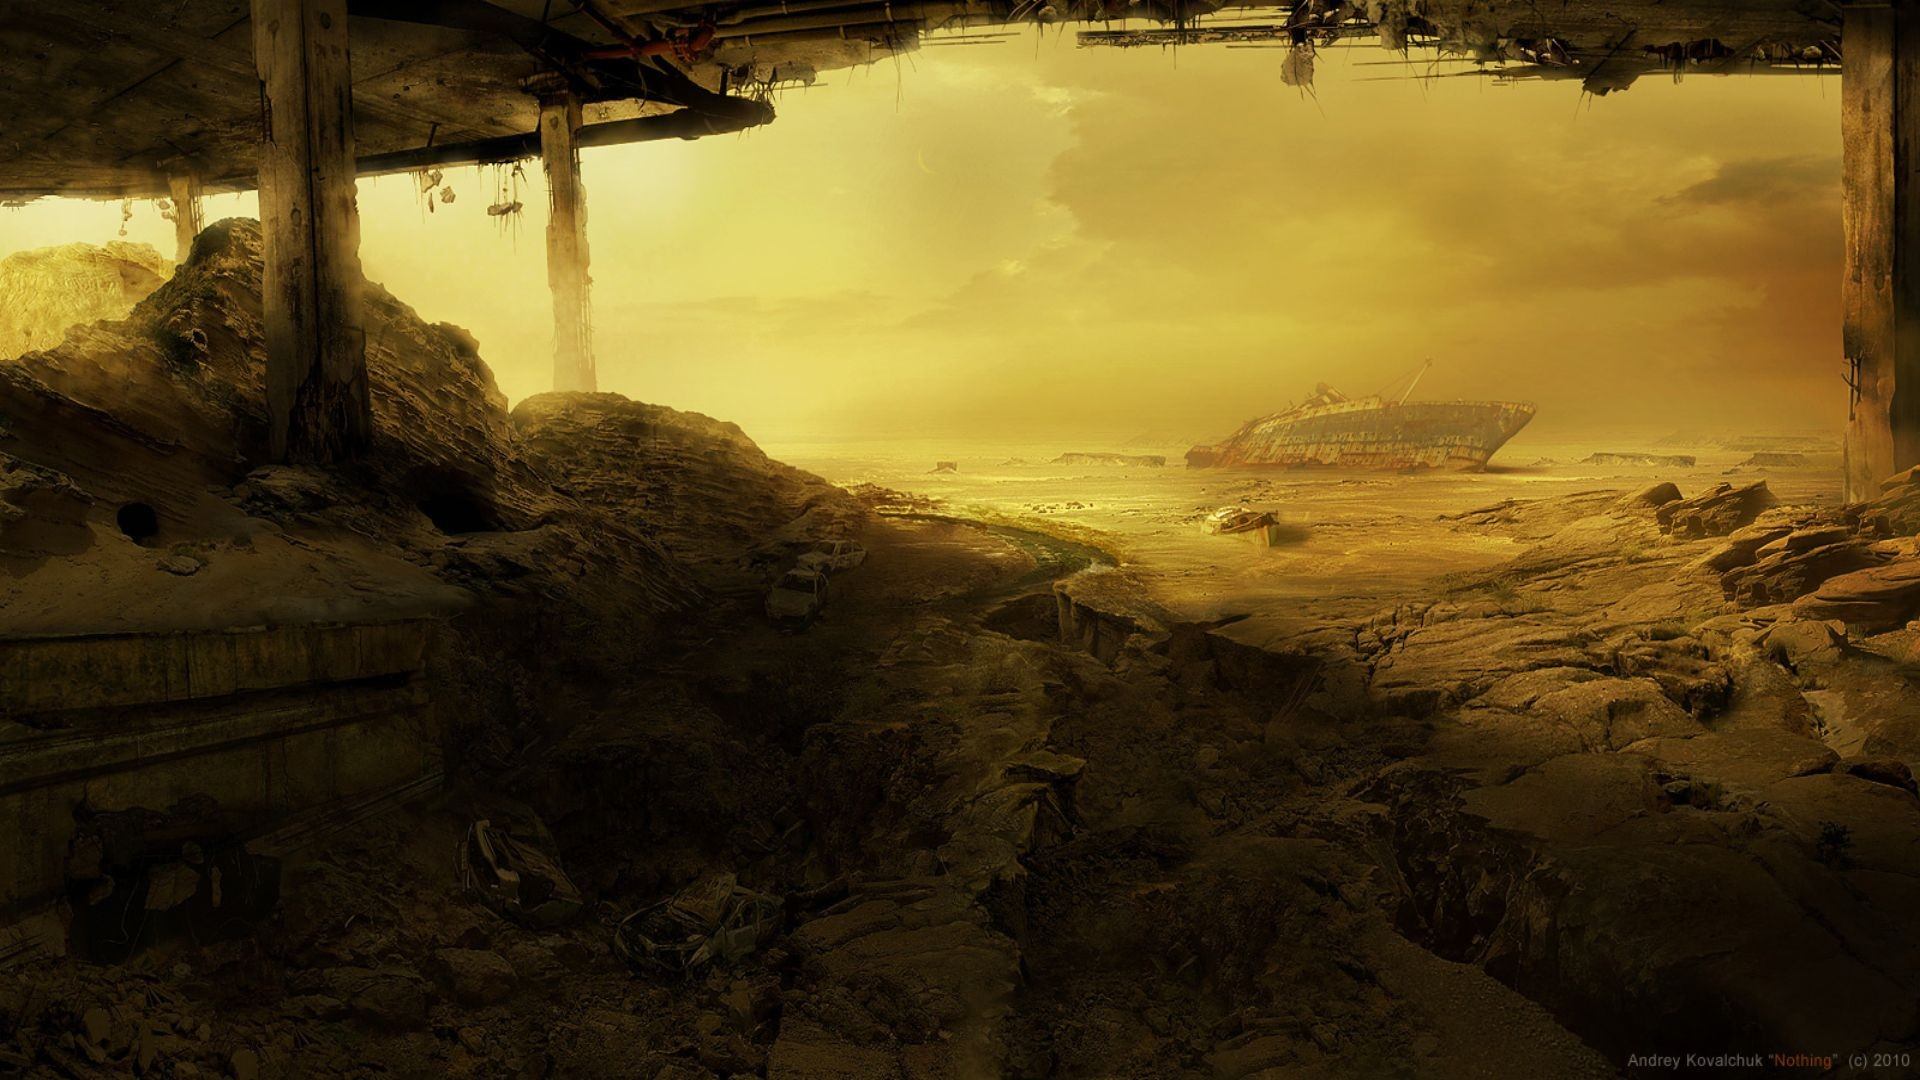 landscape shipwreck wreck futuristic apocalyptic artwork dark 2010 (year) apocalyptic science fiction